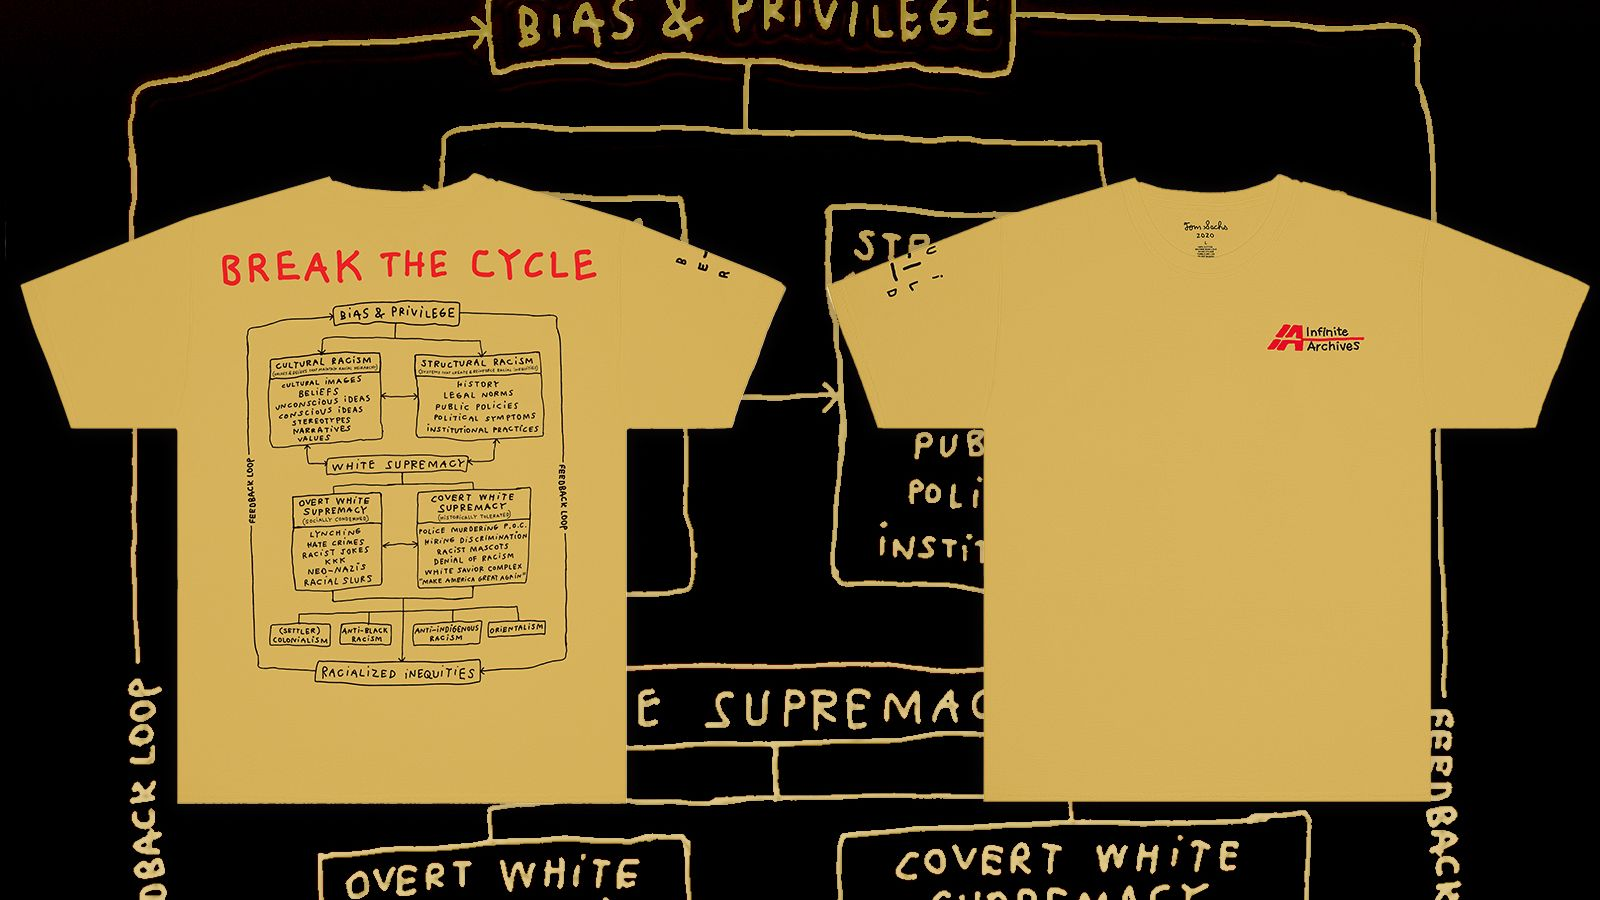 INFINITE ARCHIVES X TOM SACHS - campaign